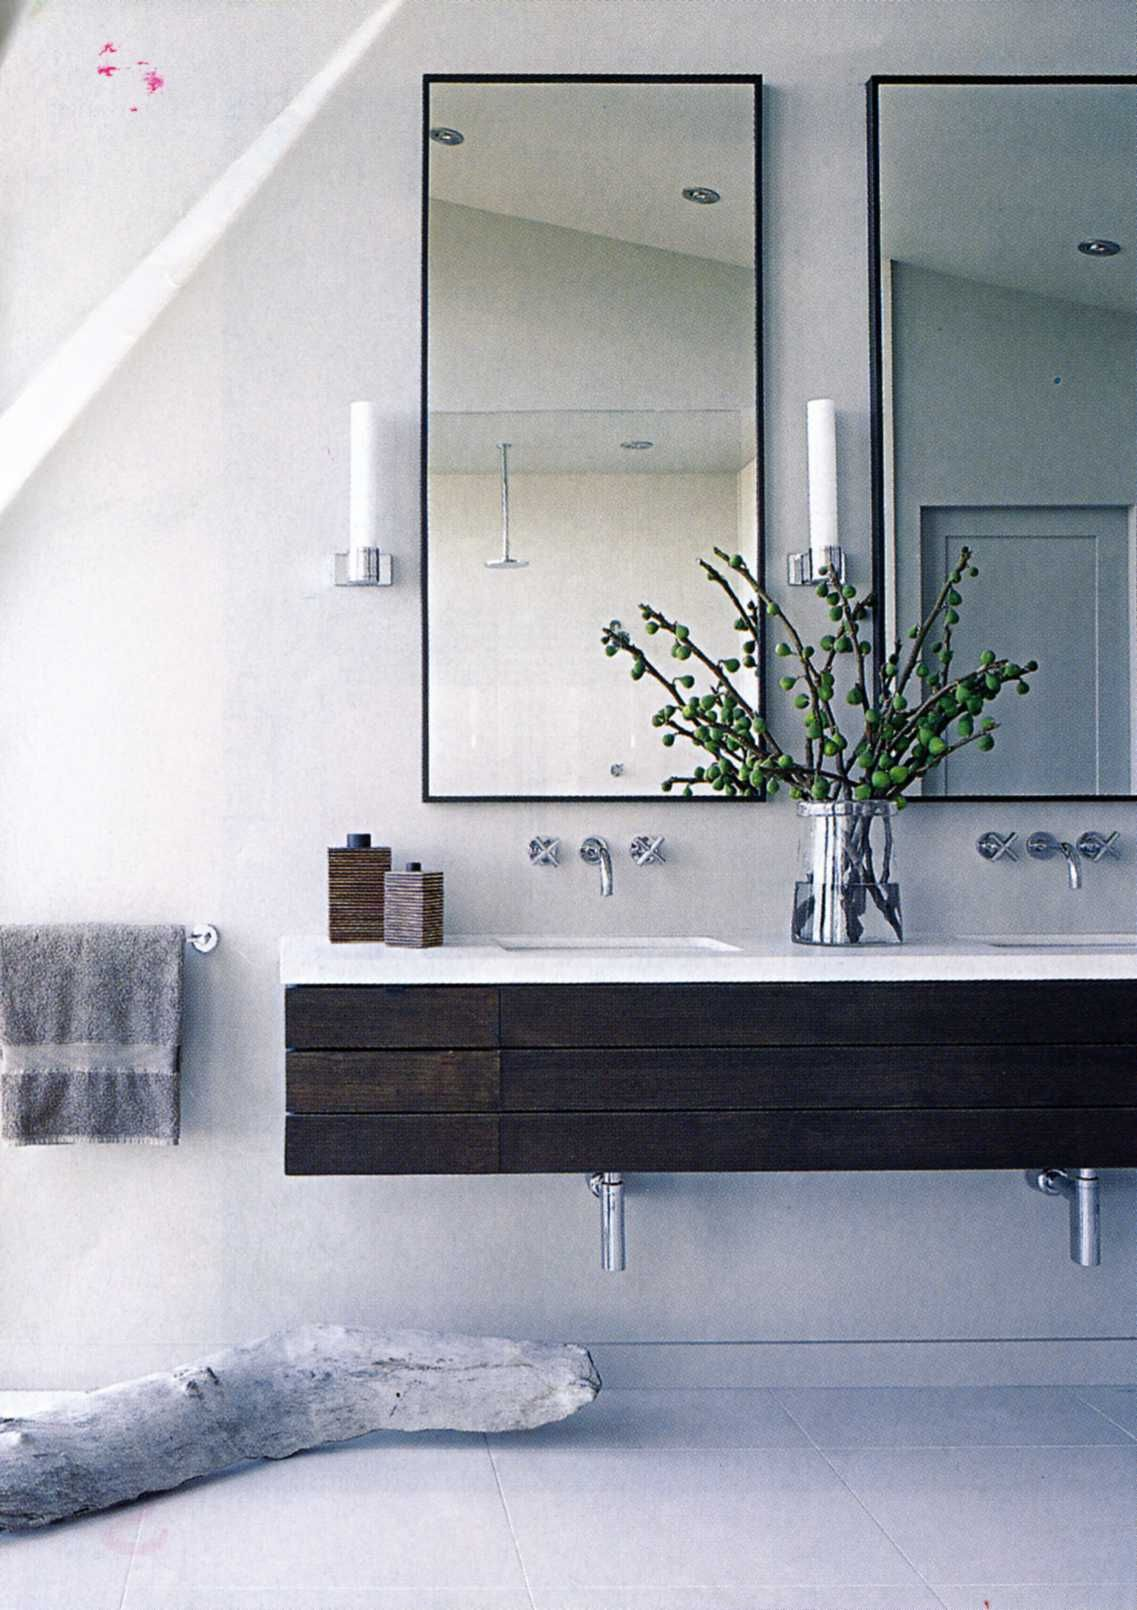 inspiration for vanity | finish will be in a much more natural/warm ...